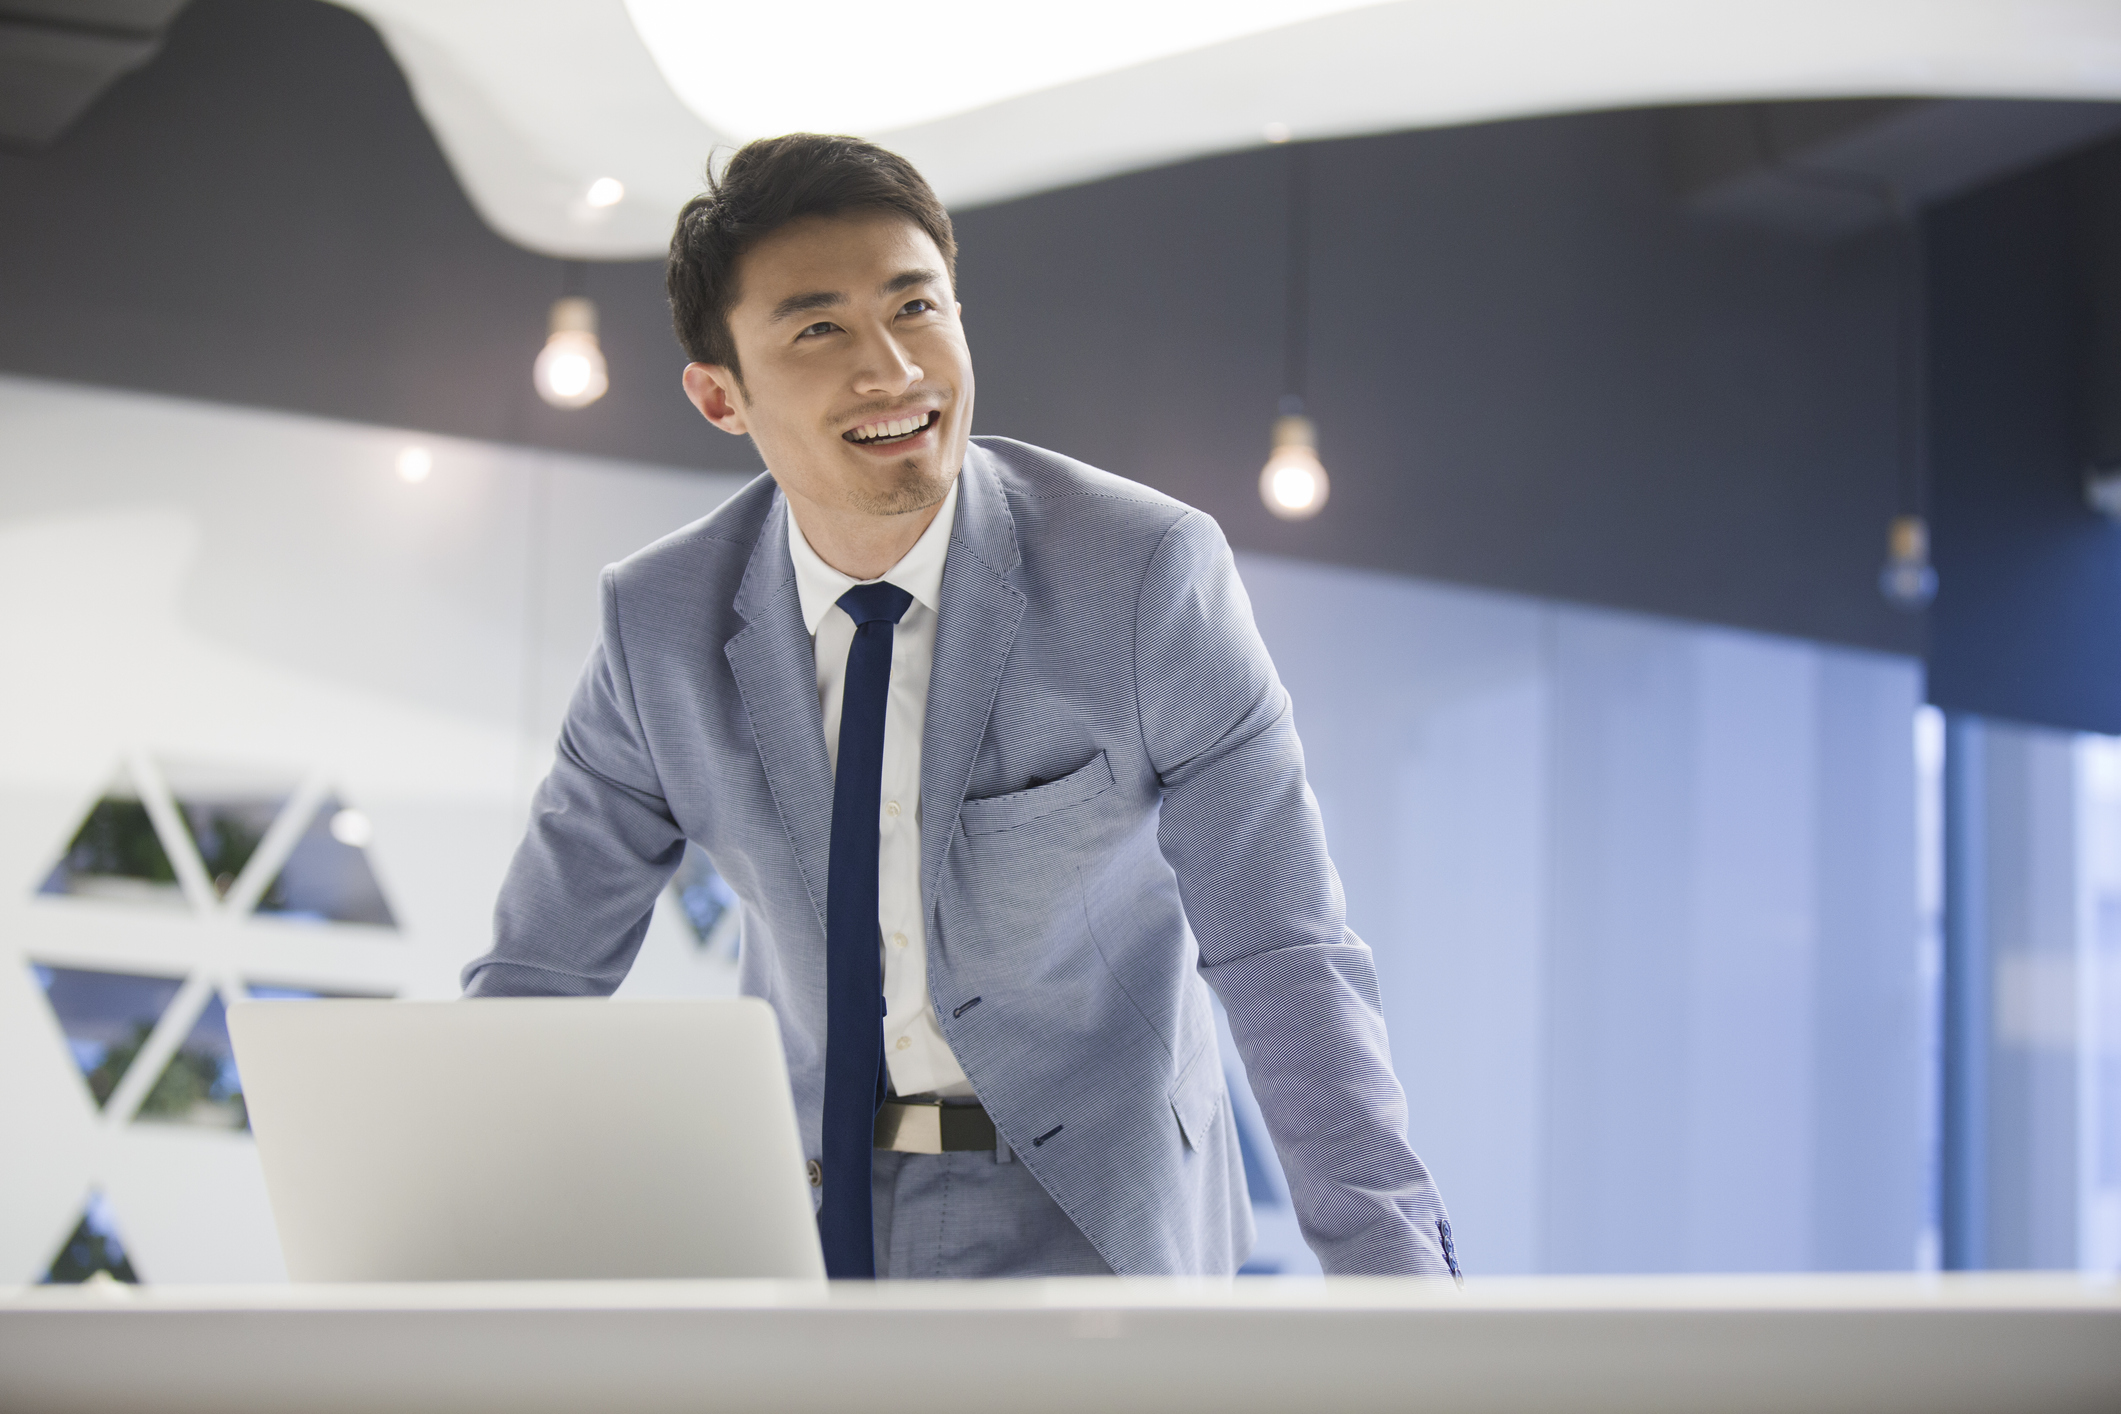 professional man with laptop